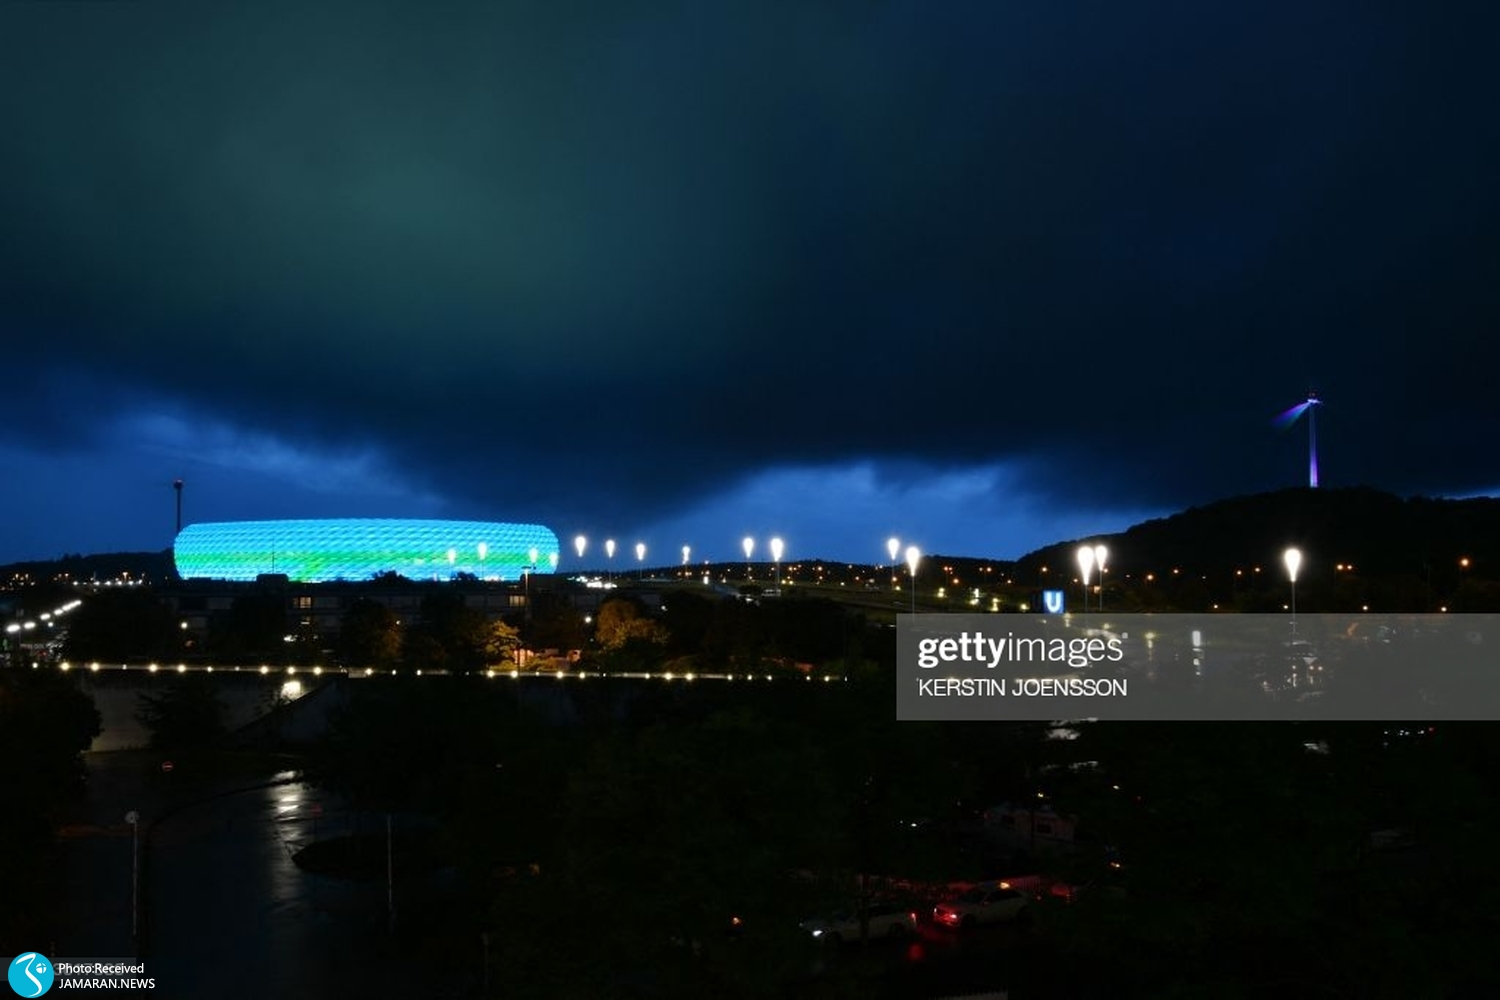 gettyimages-1233617383-1024x1024